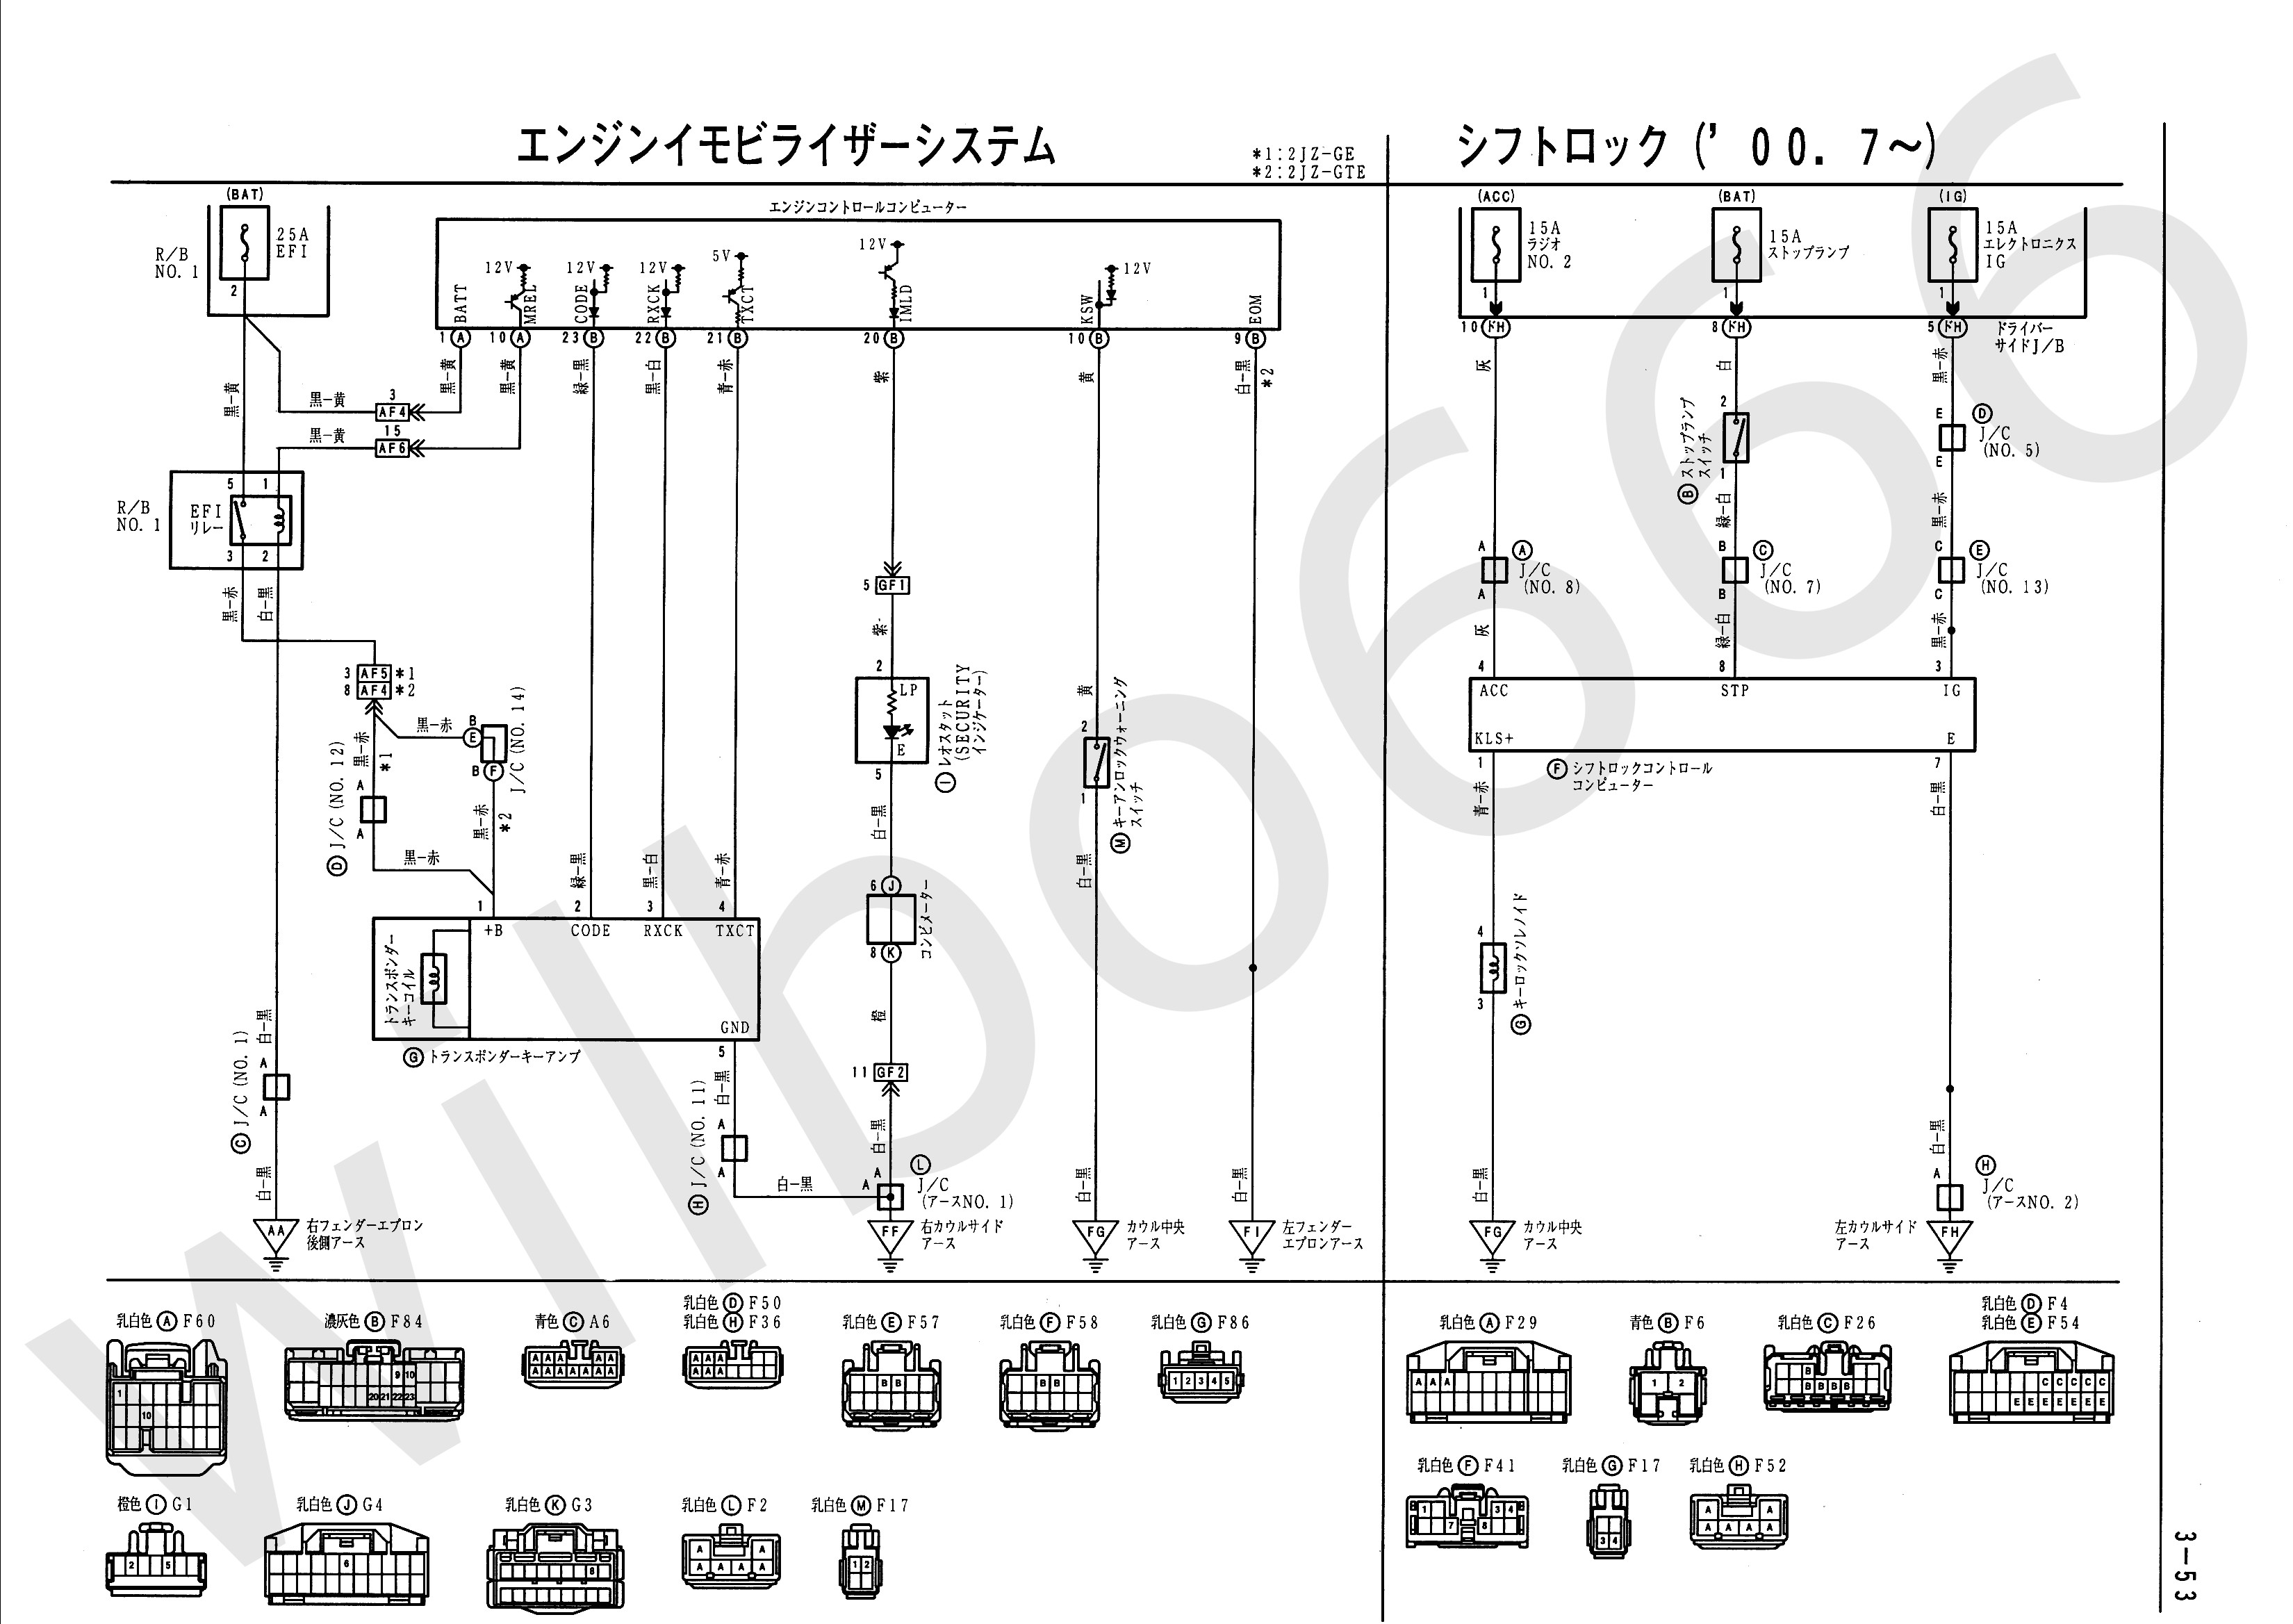 Electric Meter Box Wiring Diagram Wilbo666 2jz Gte Vvti Jzs161 Aristo Engine Wiring Of Electric Meter Box Wiring Diagram